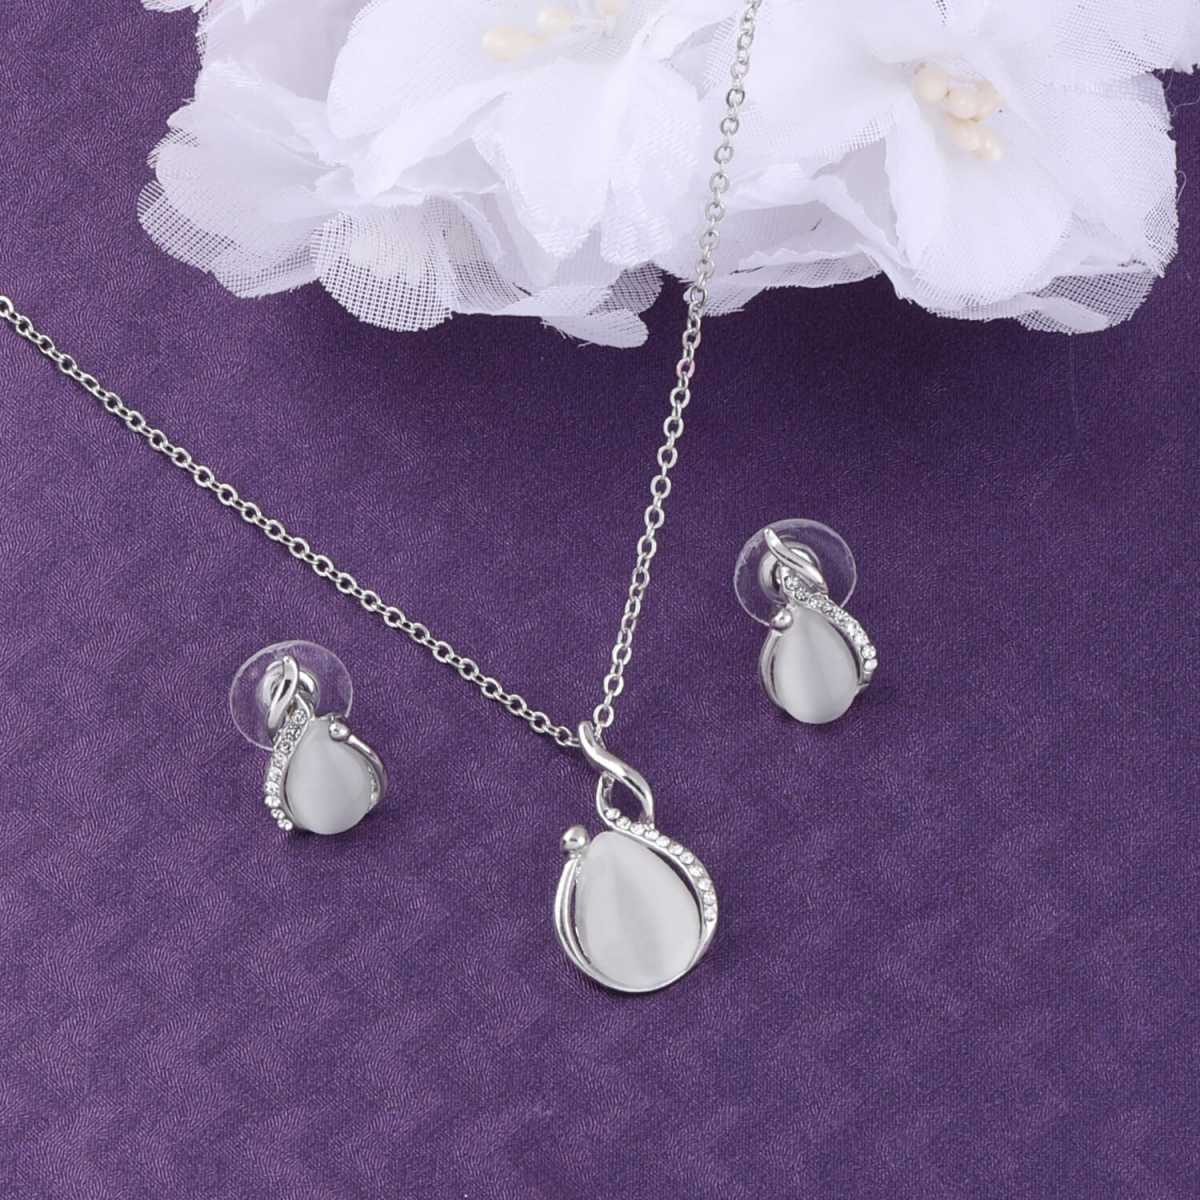 SILVER SHINE Delicate Silver Plated Party Wear  Pendant Set For Women Girl